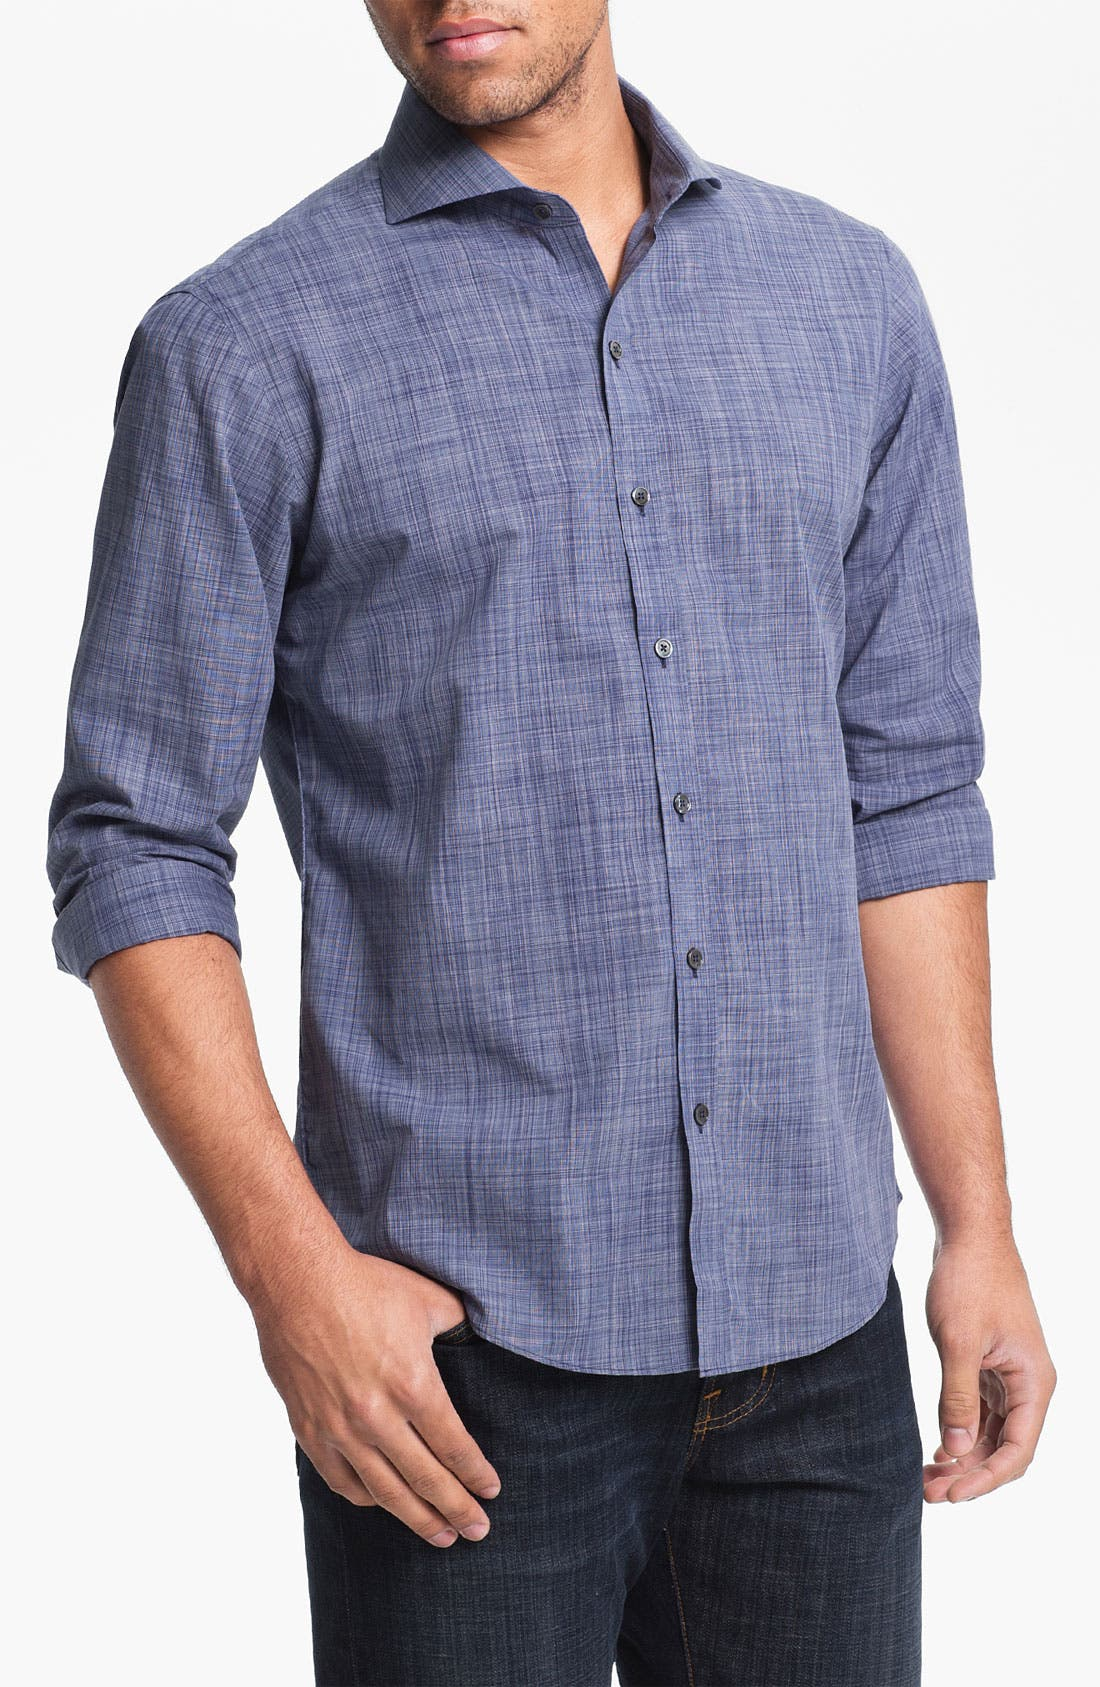 Main Image - Zachary Prell 'Young' Sport Shirt